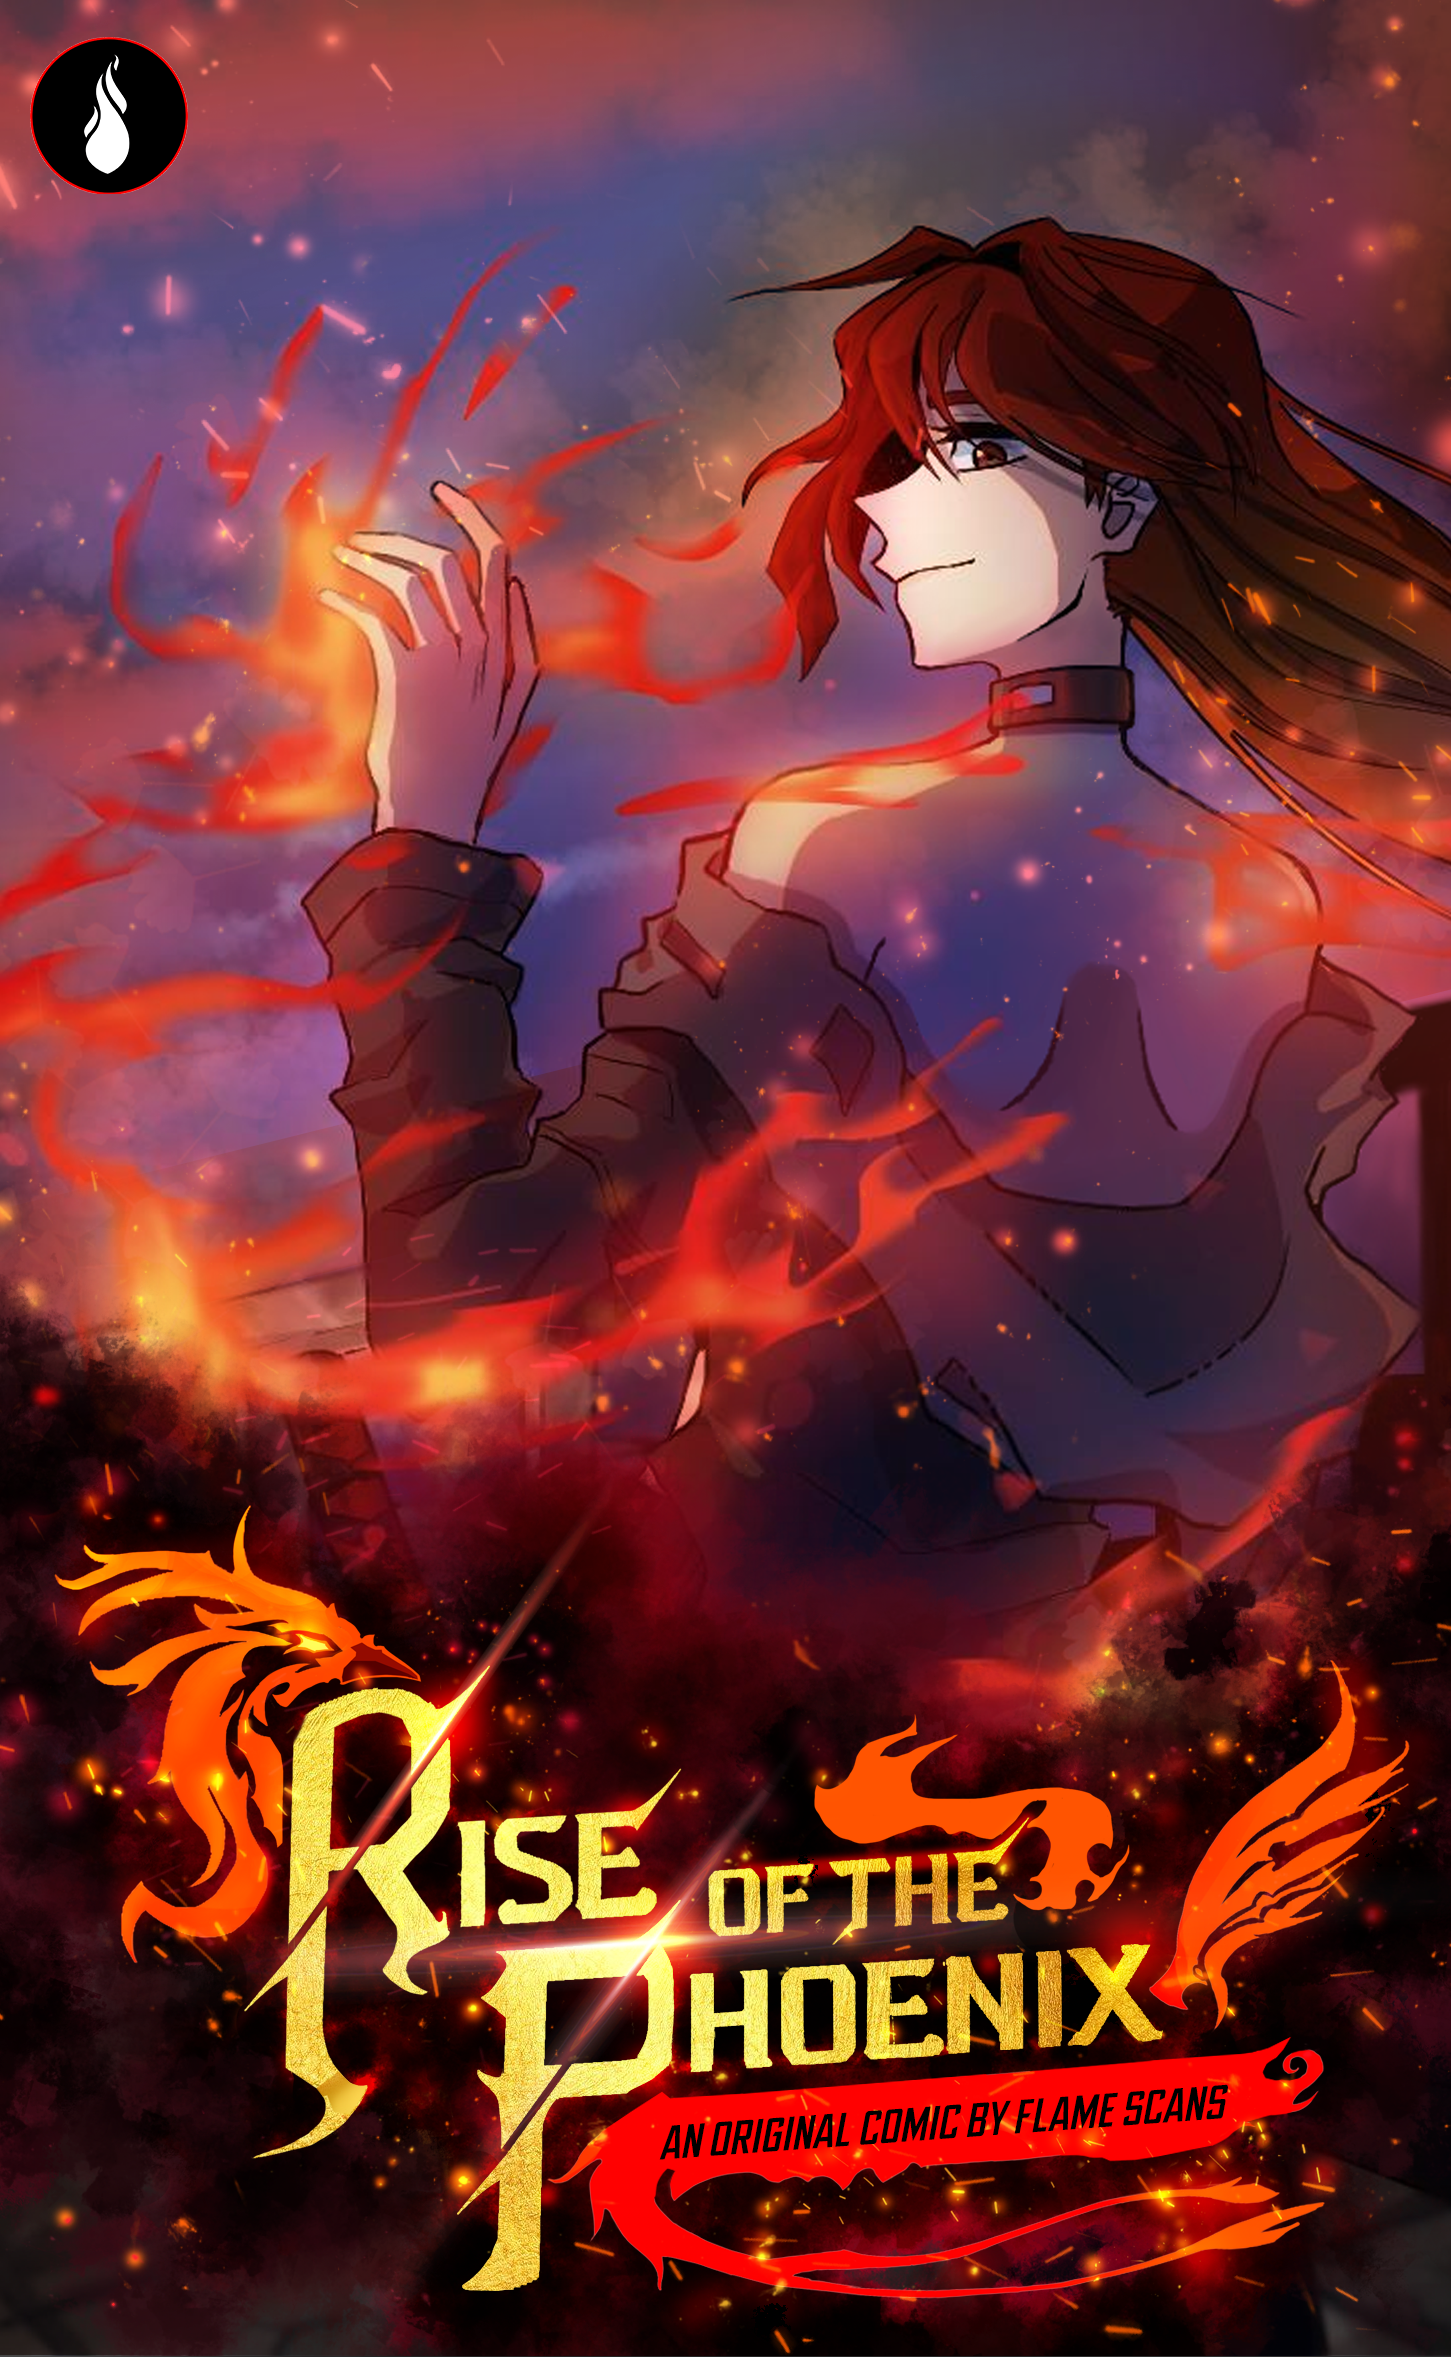 Rise of the Phoenix [Flame Scans Original]